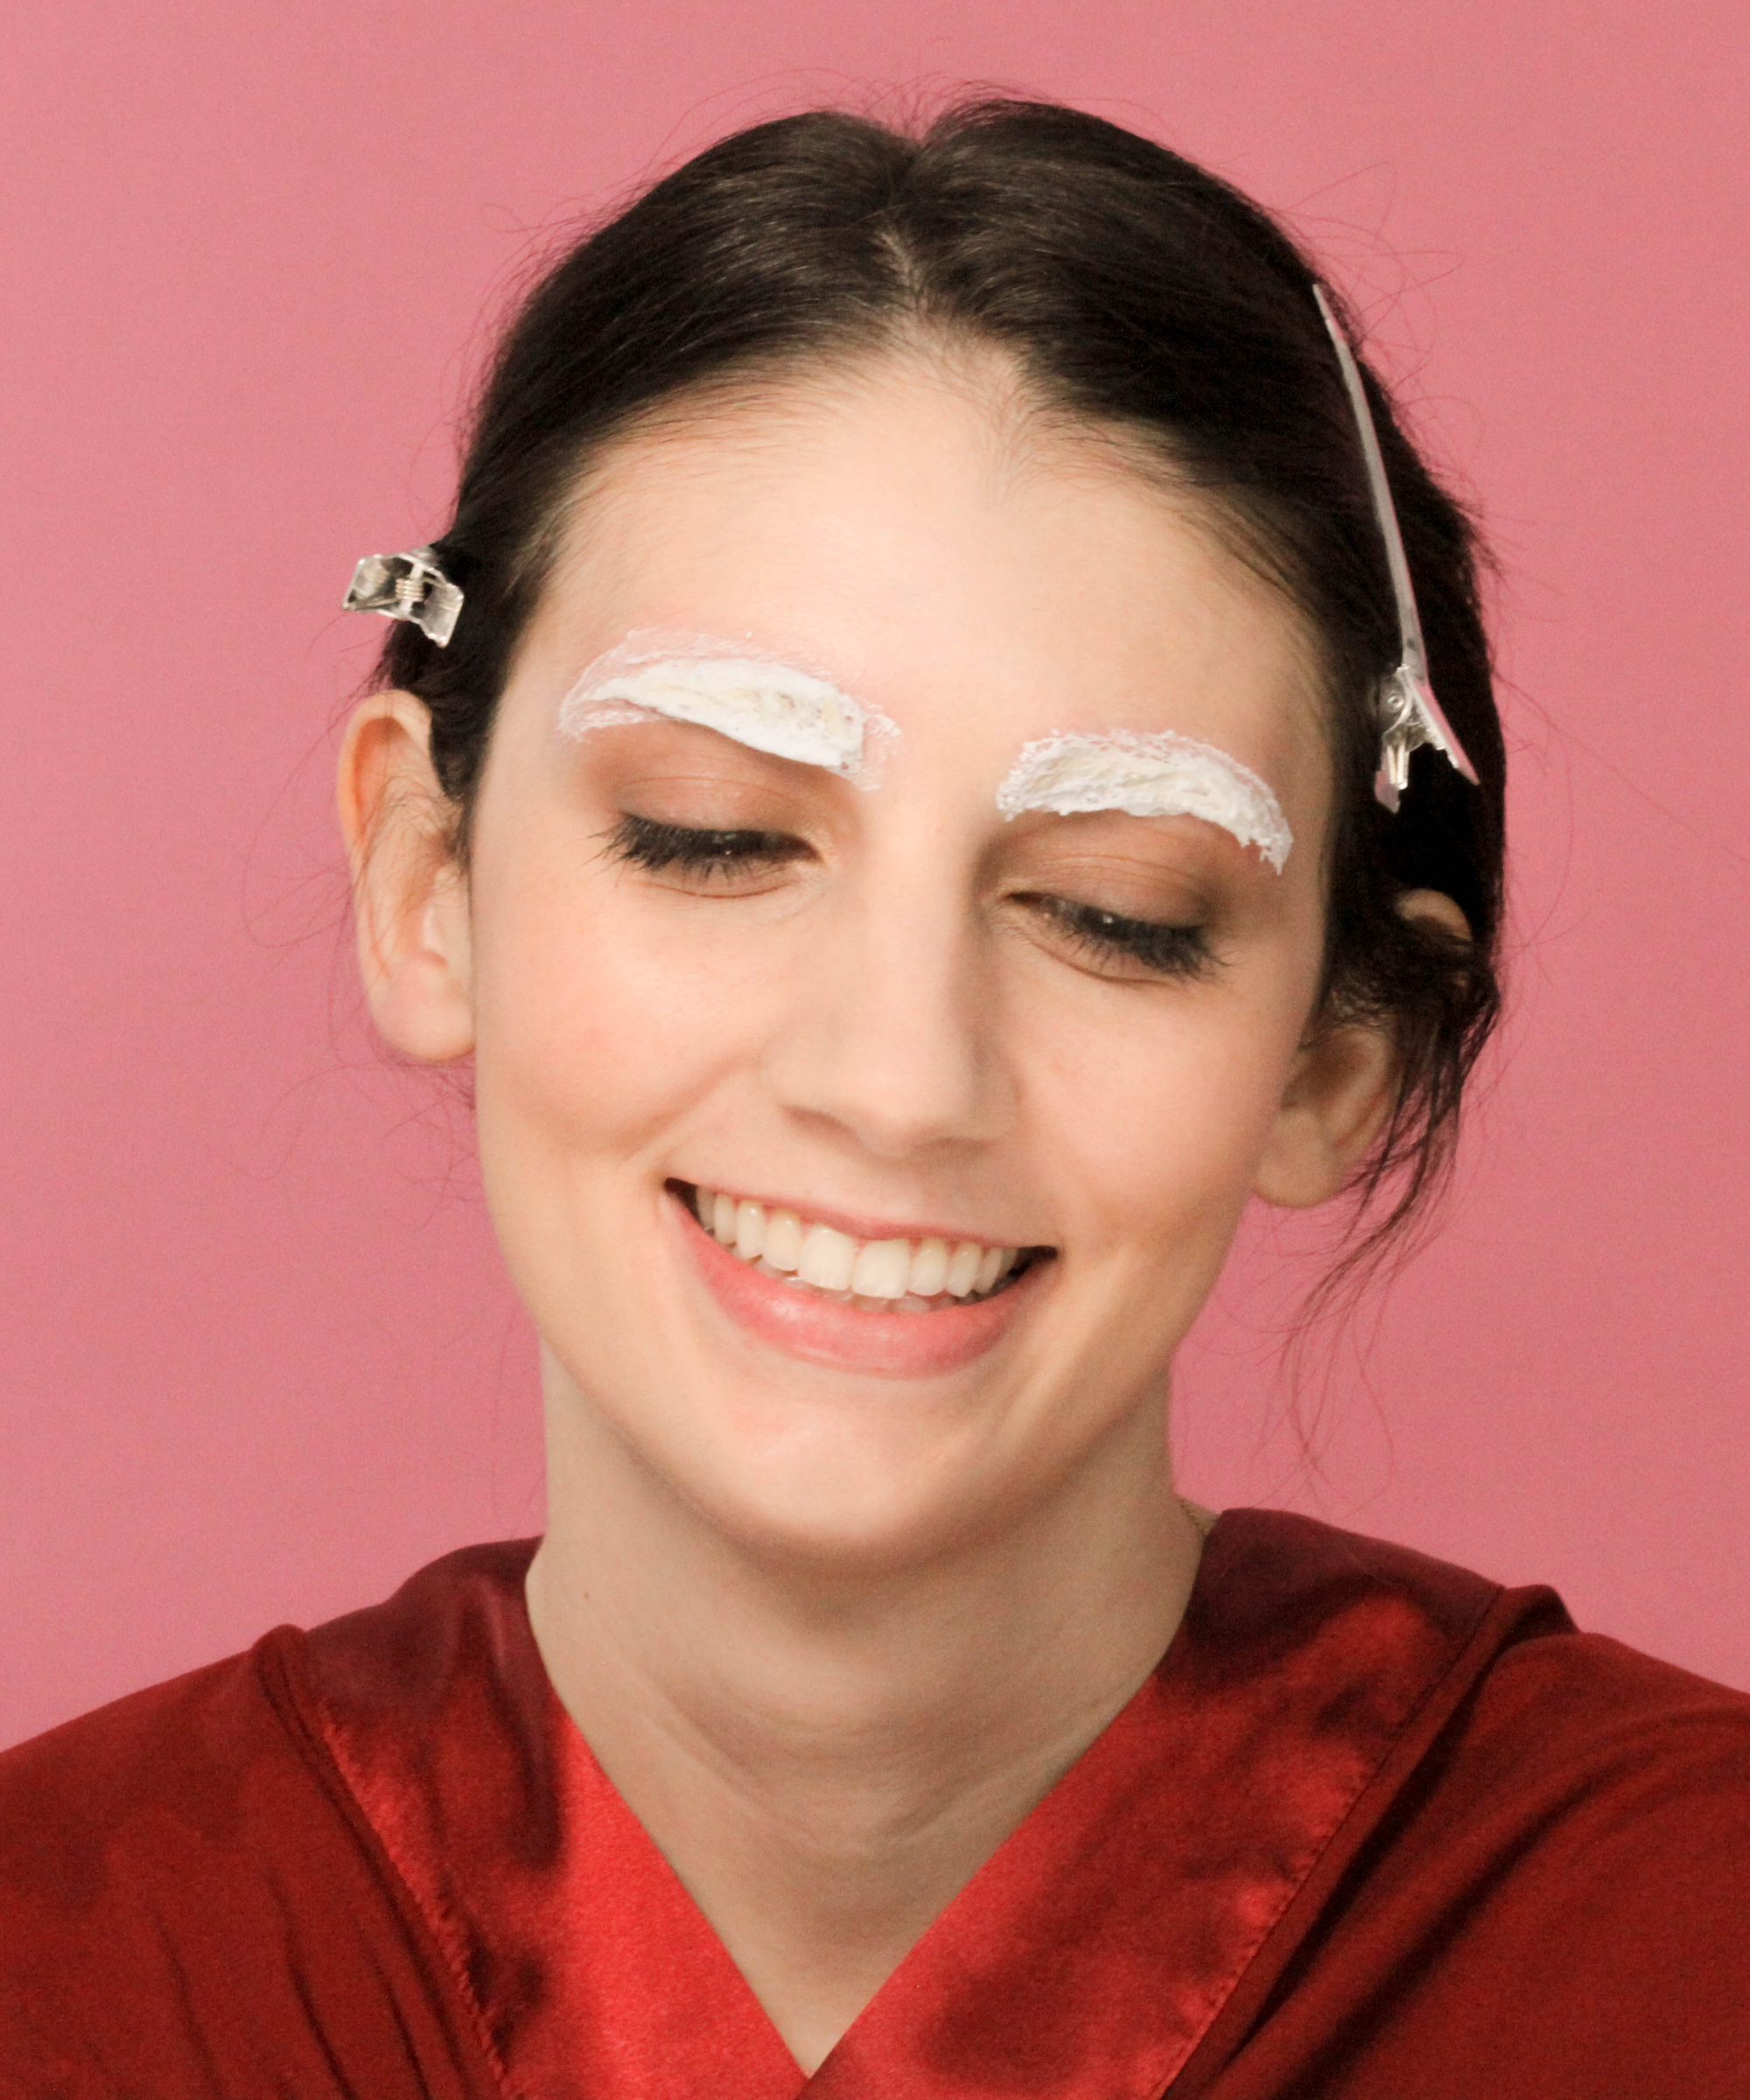 Eyebrow Bleach Before After Brow Dyeing Photos